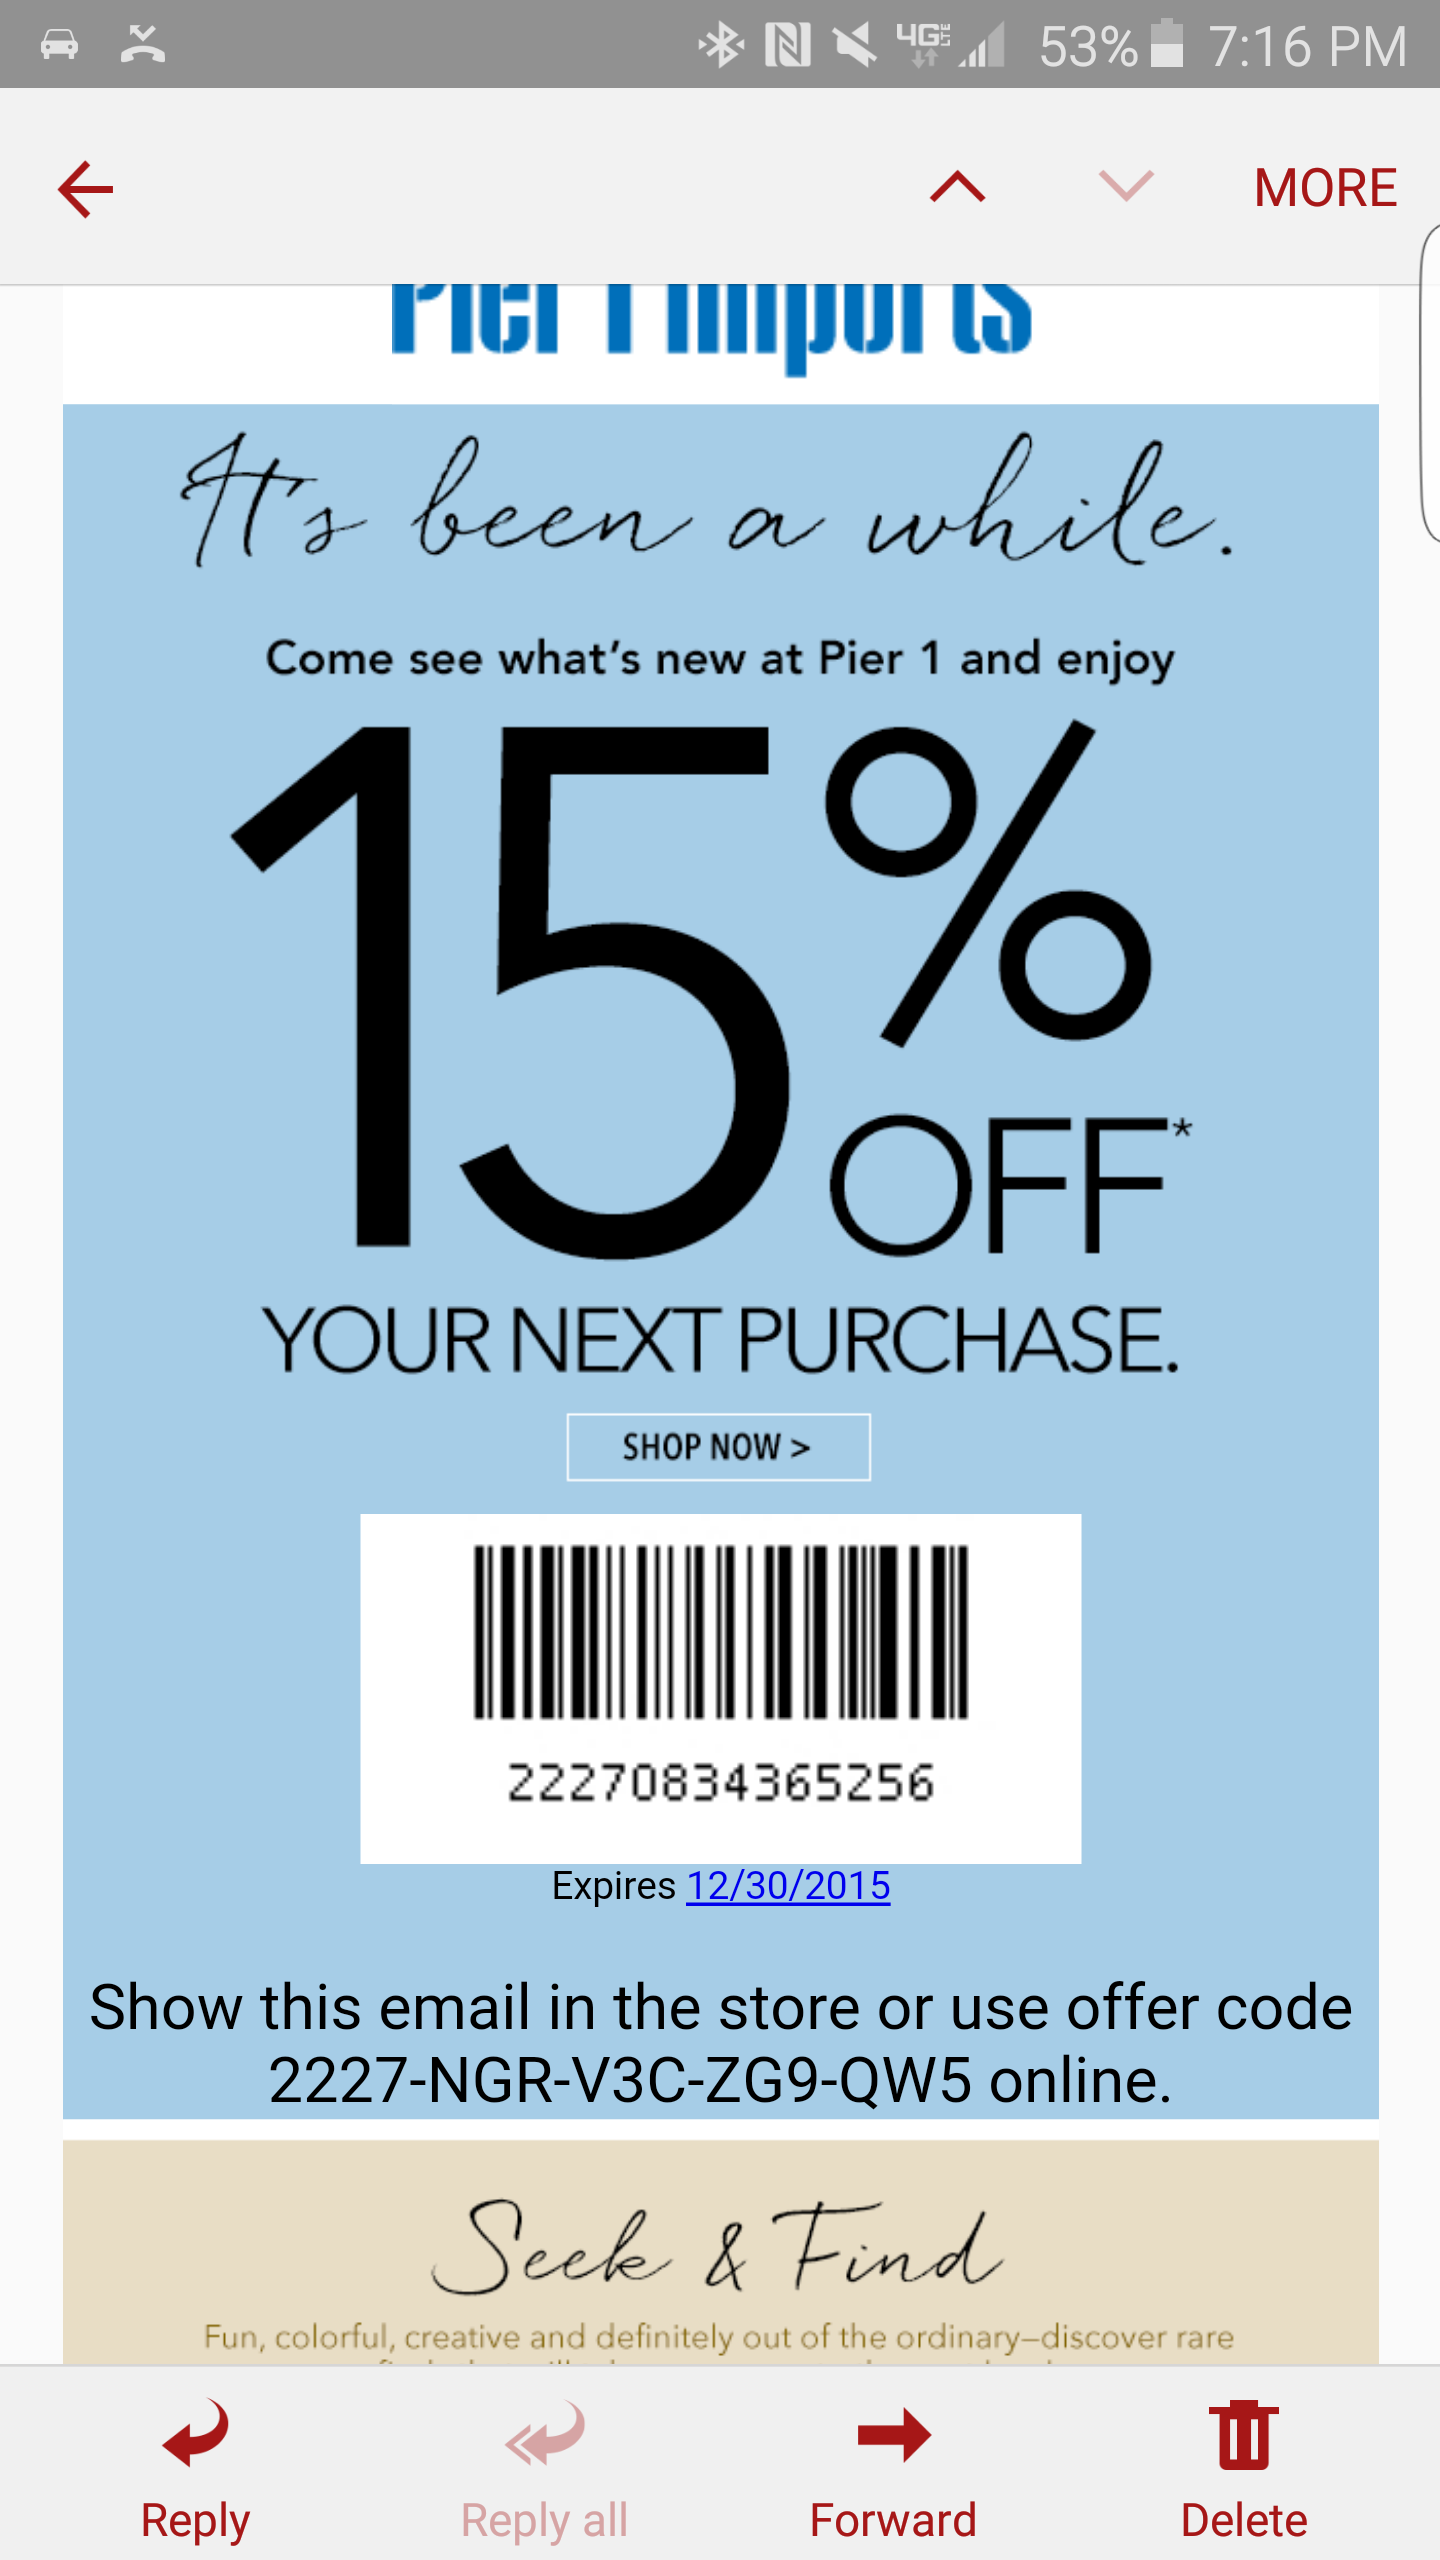 Pier1 coupon codes